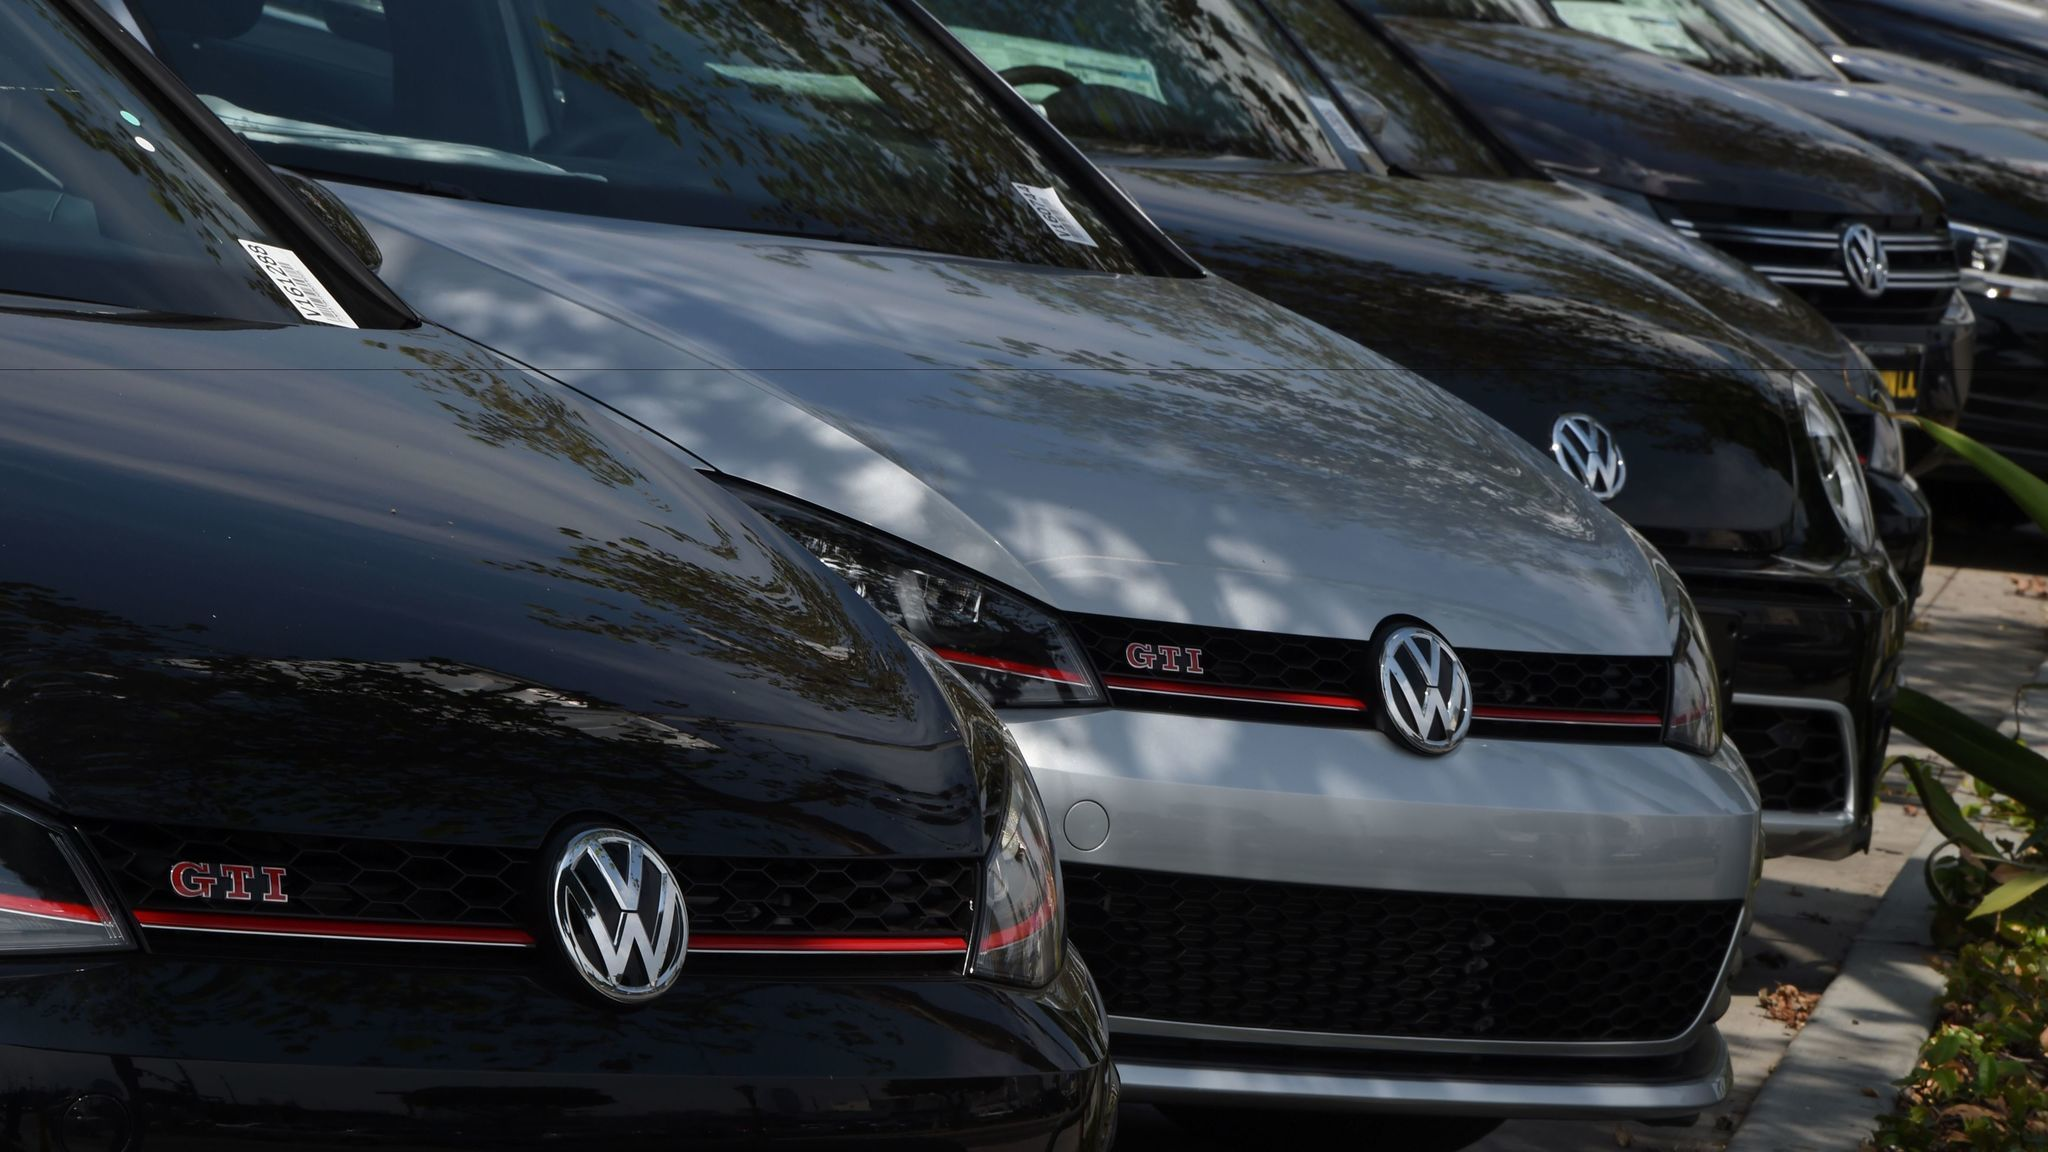 What emissions scandal VW may have just be e the world s top